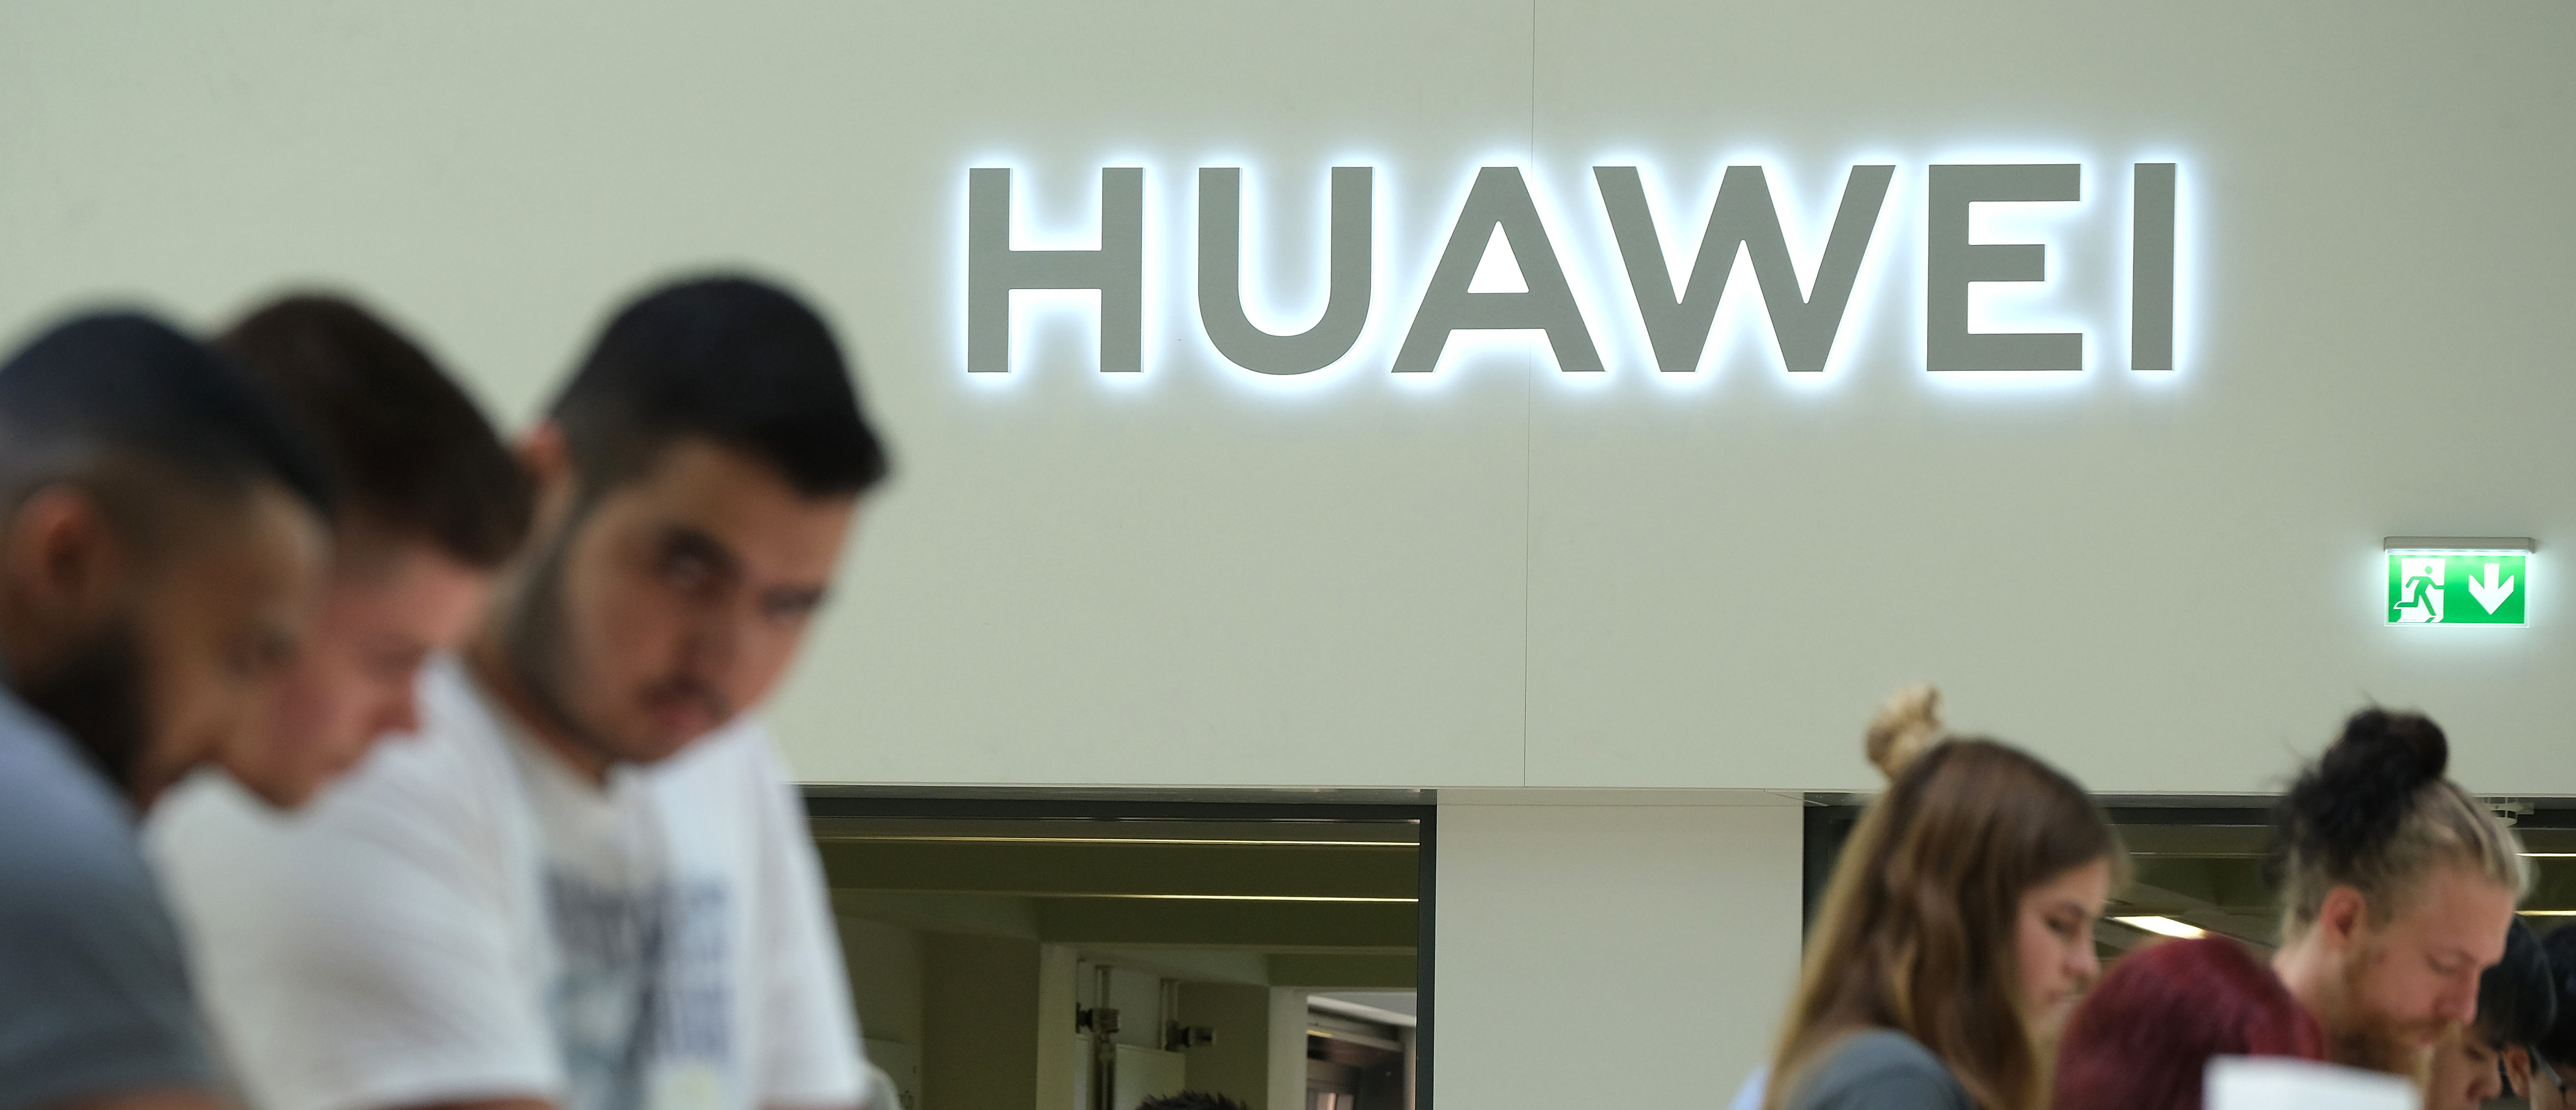 BERLIN, GERMANY - SEPTEMBER 06: Visitors check out new Huawei smartphones at the 2019 IFA home electronics and appliances trade fair on September 06, 2019 in Berlin, Germany. The 2019 IFA fair will be open to the public from September 6-11. (Photo by Sean Gallup/Getty Images)